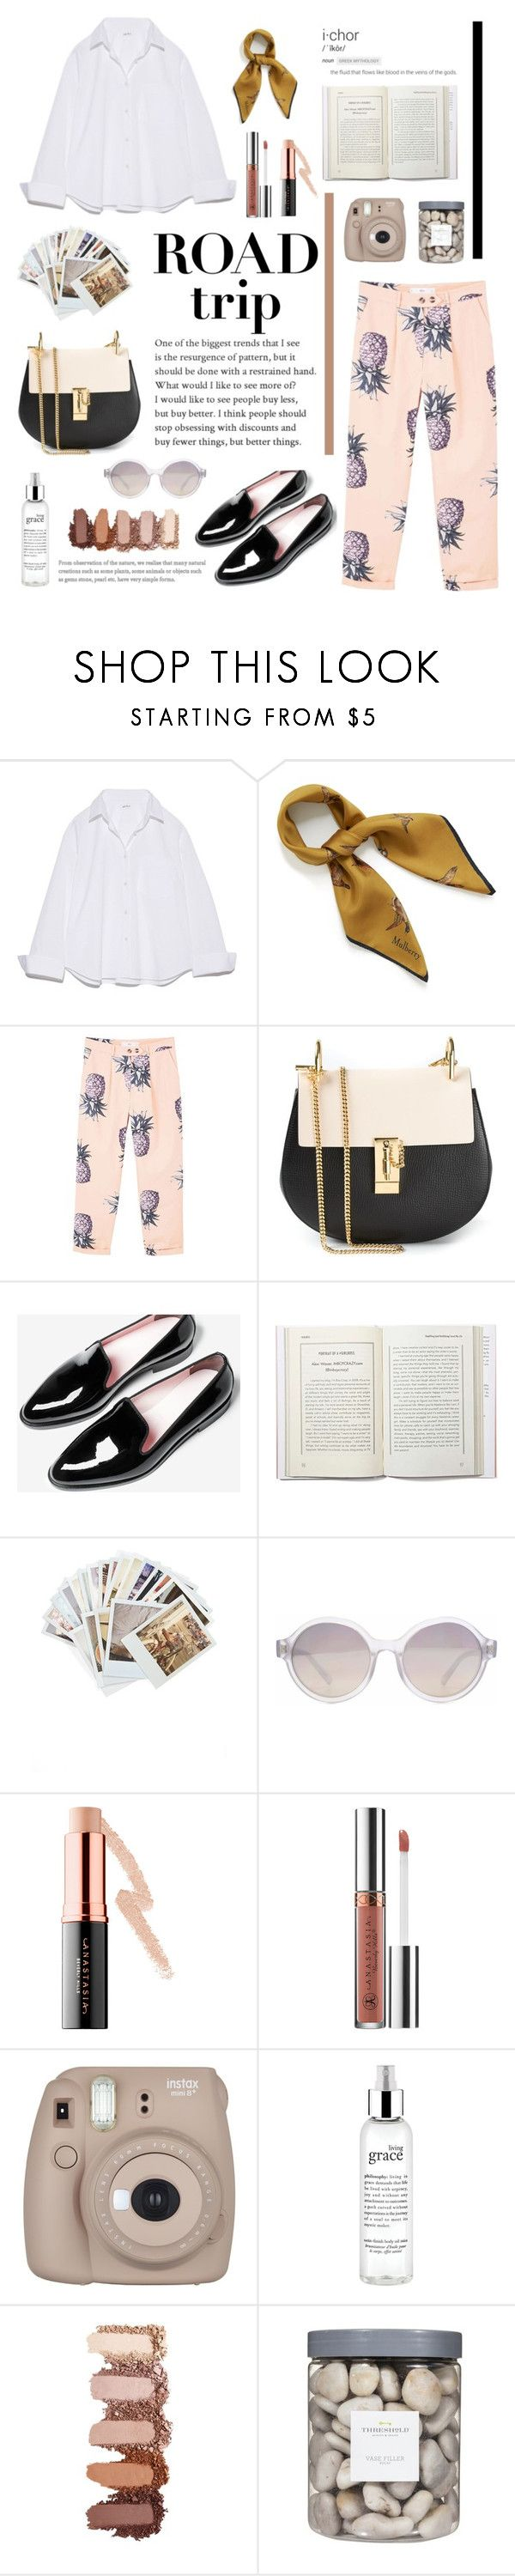 """""""Get ready for a road trip"""" by higuysimjulie ❤ liked on Polyvore featuring Mulberry, MANGO, Chloé, Everlane, Chronicle Books, HOOK LDN, Anastasia Beverly Hills, Fujifilm, philosophy and Threshold"""